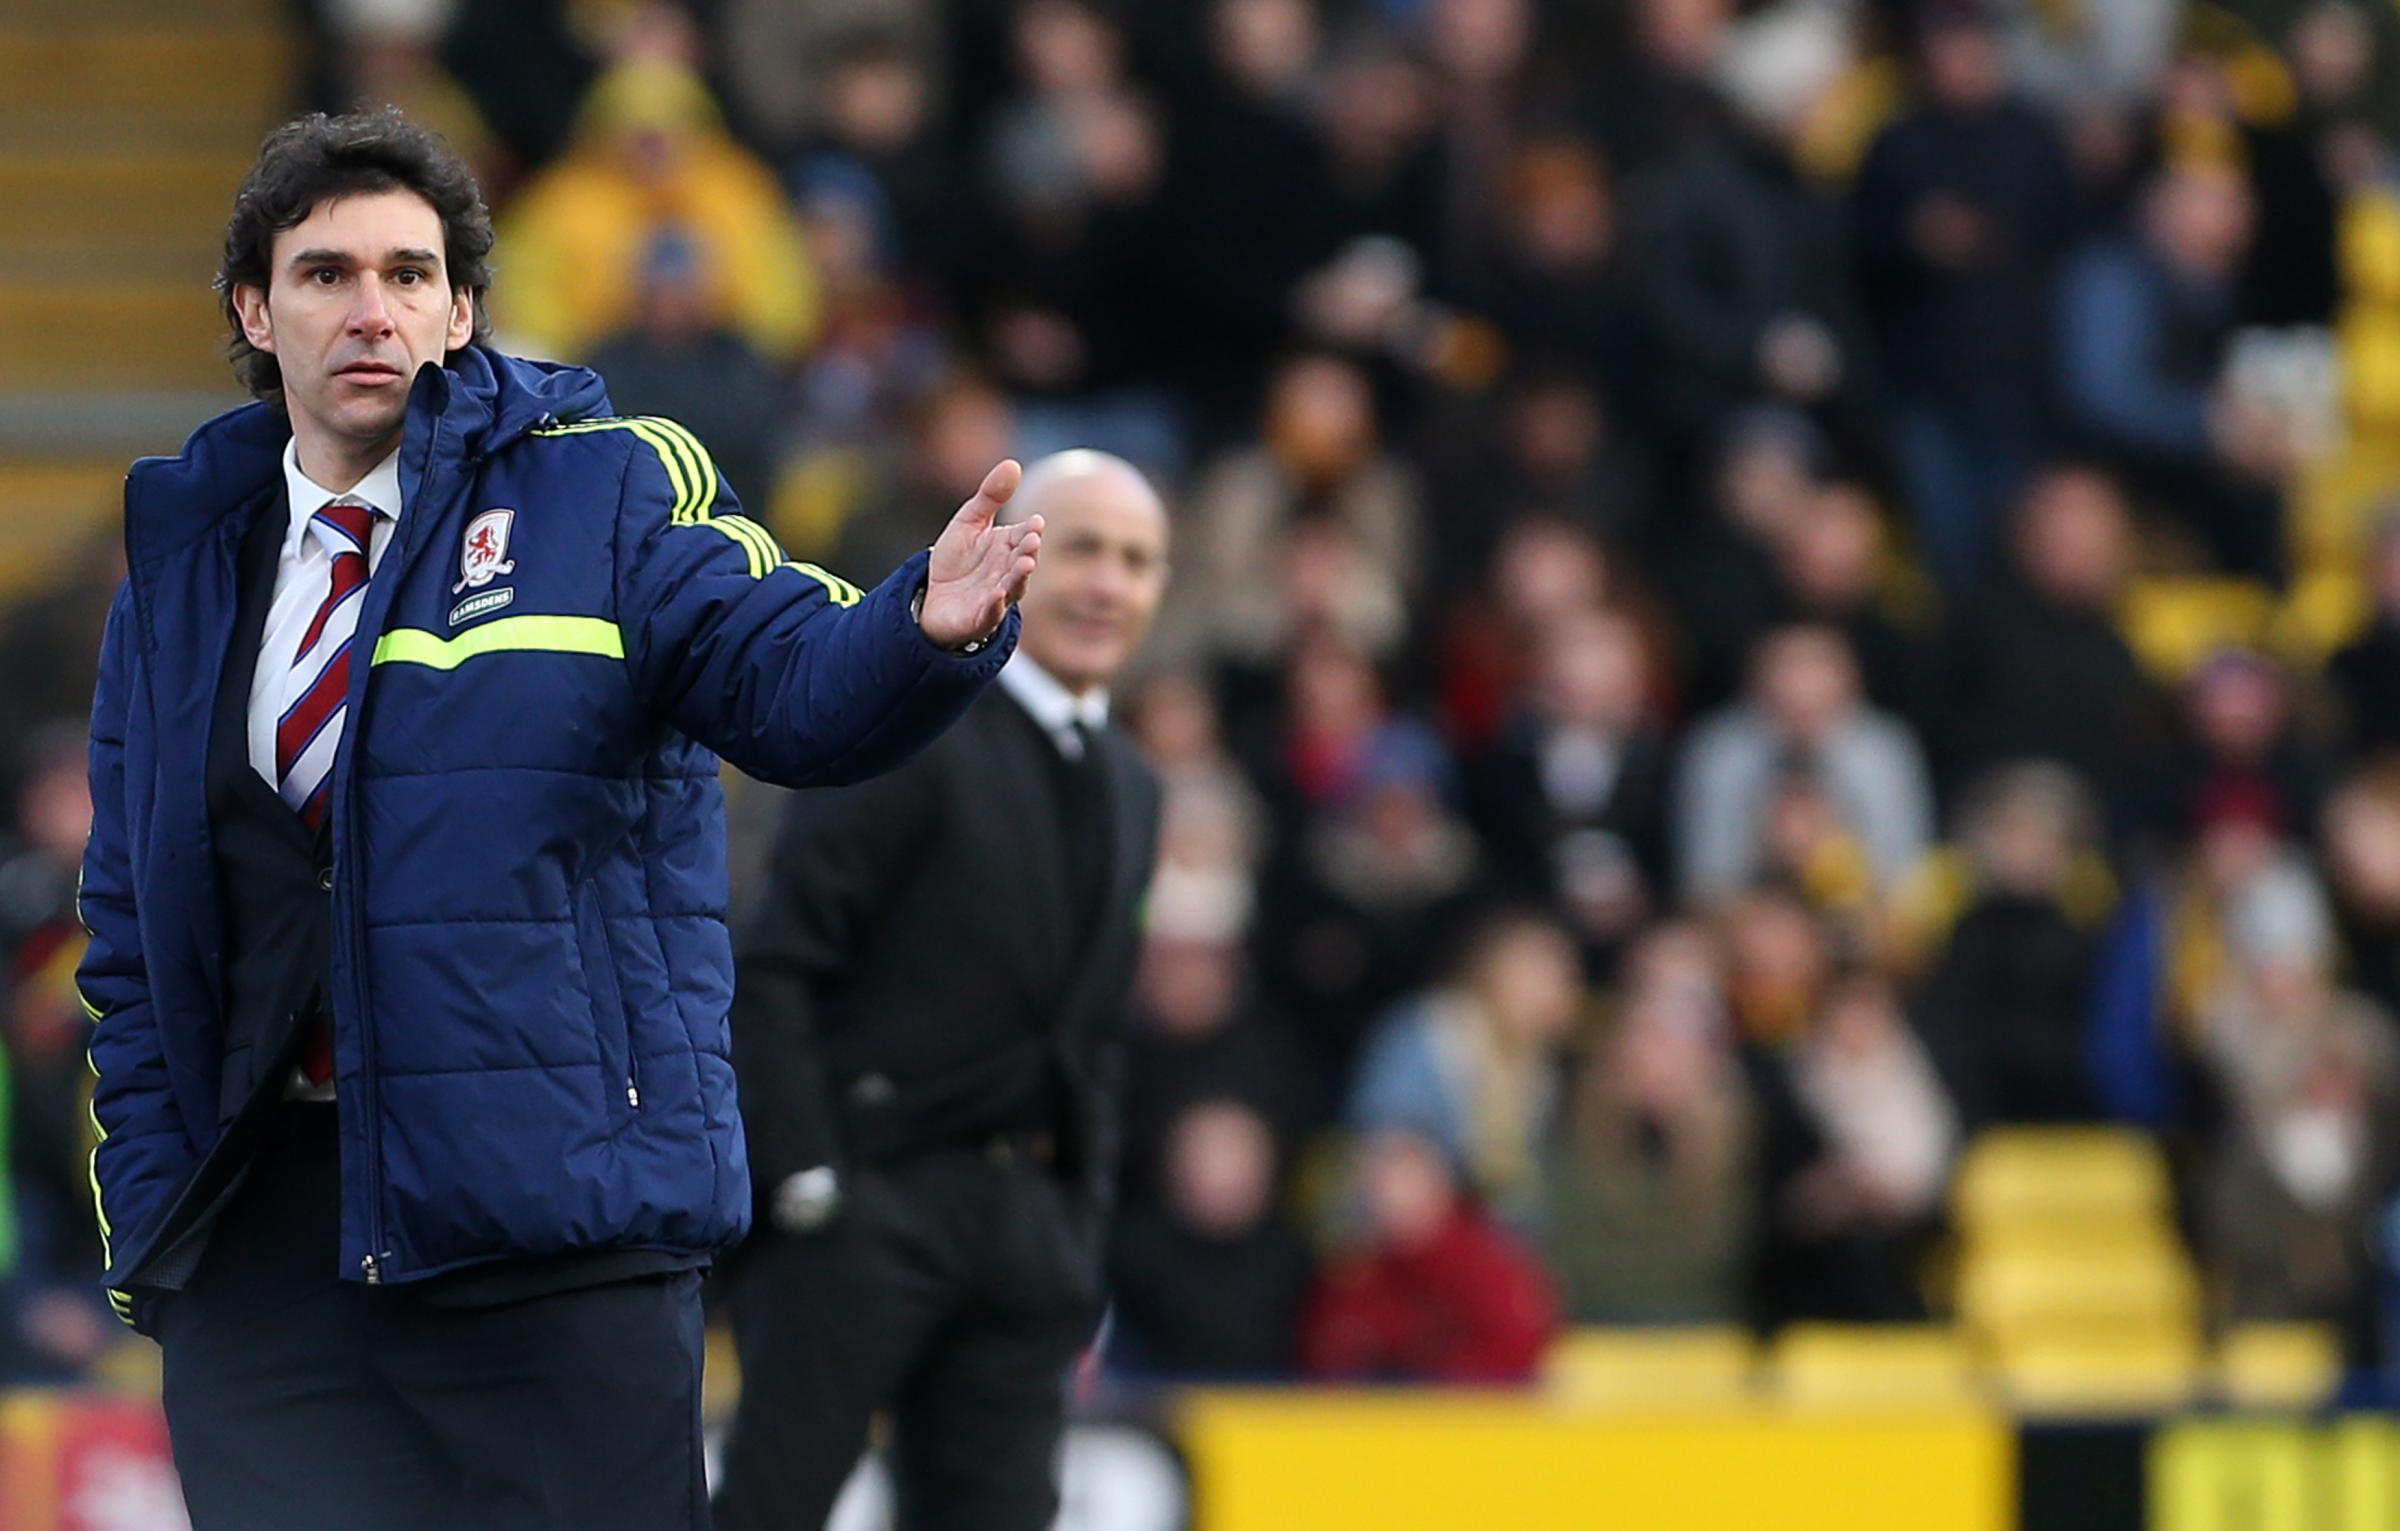 UNHAPPY: Aitor Karanka has accused some of his Middlesbrough players of